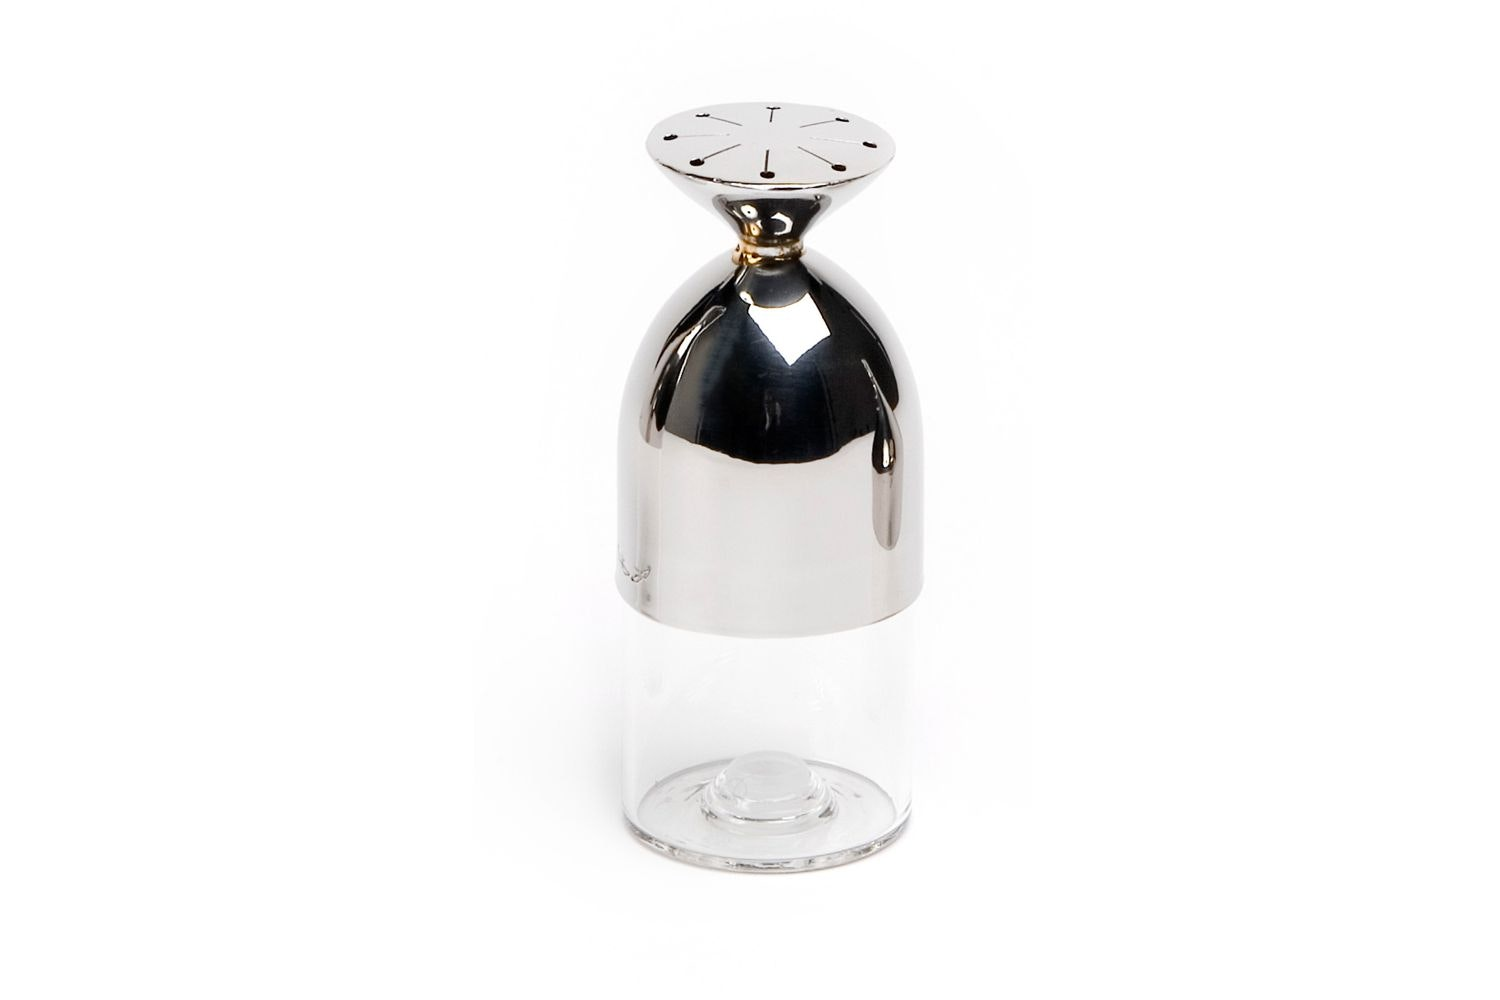 Salt Flask by Tse & Tse